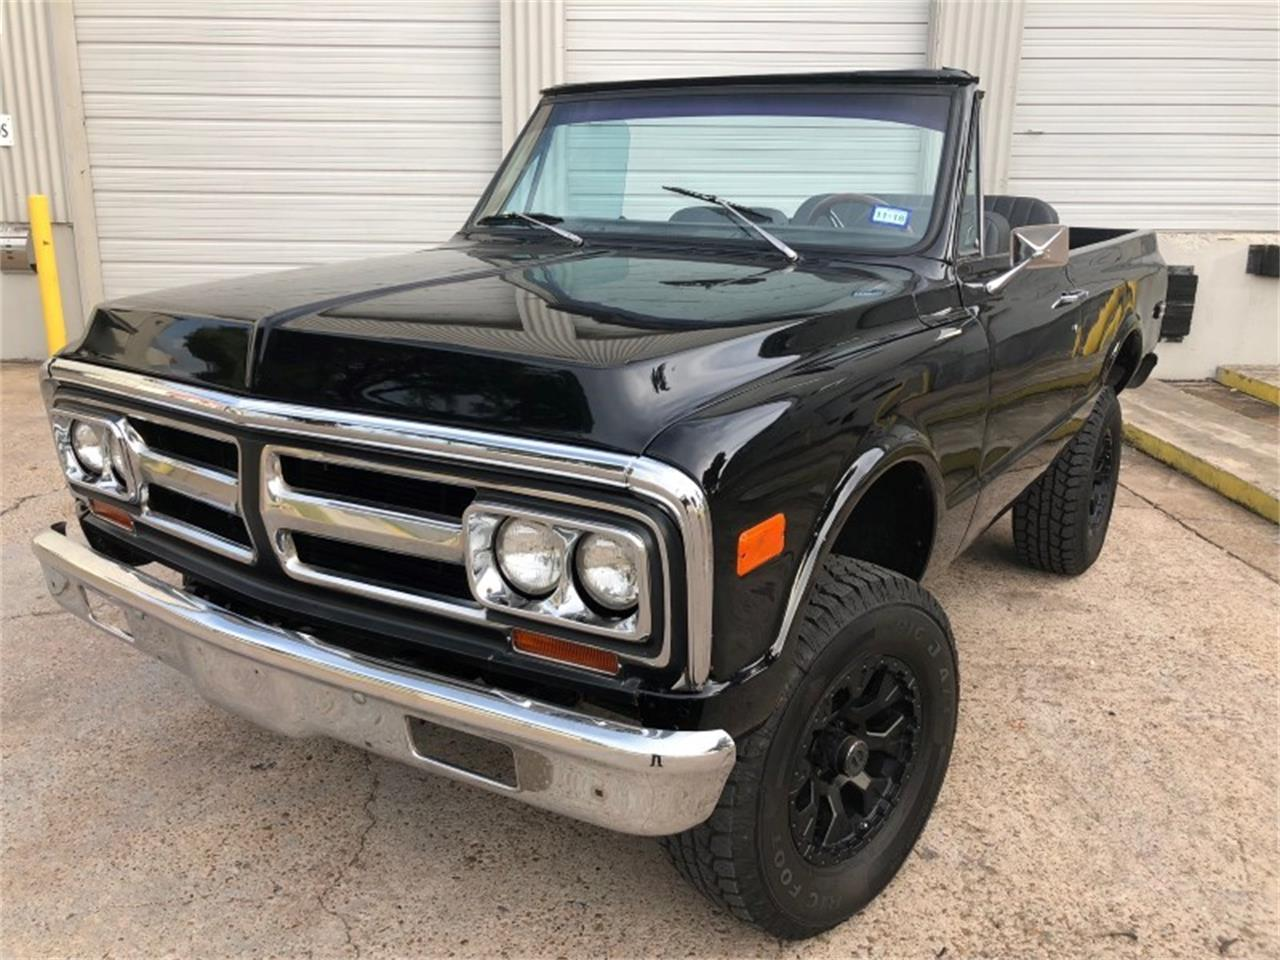 Large Picture of 1972 GMC Jimmy located in Texas - $26,500.00 - OEYL